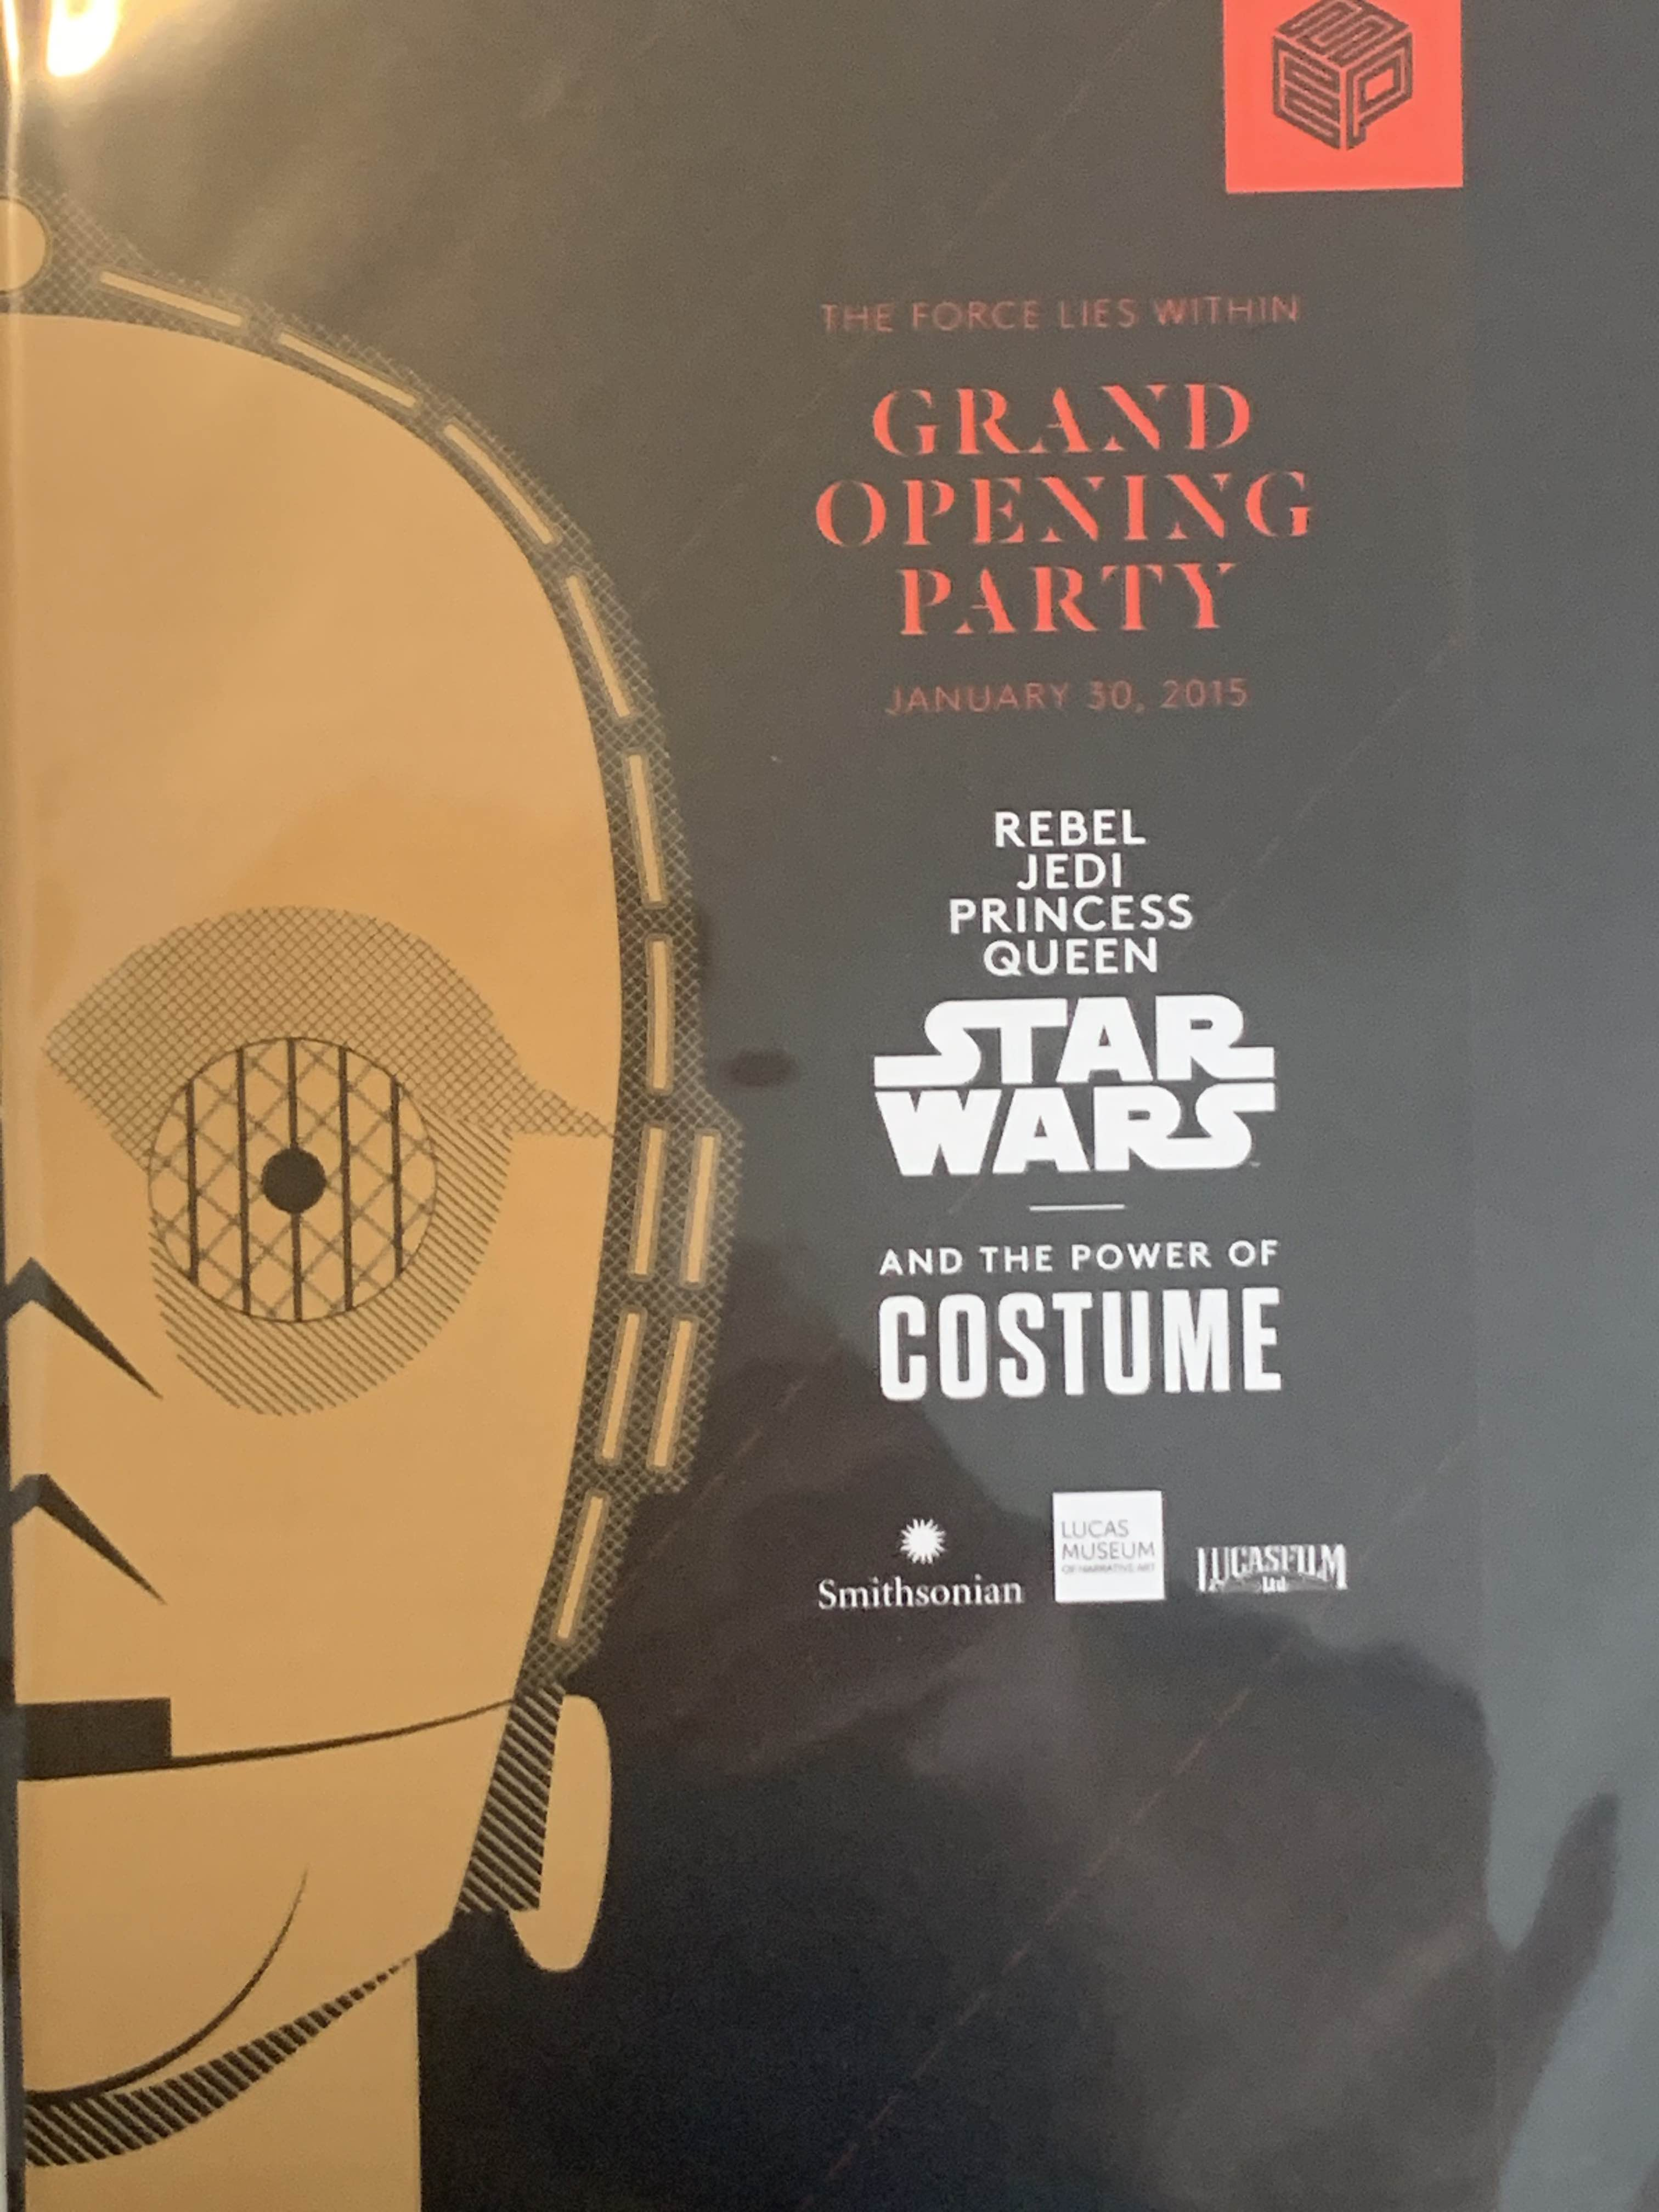 Star Wars and the Power of Costume Grand Opening Party